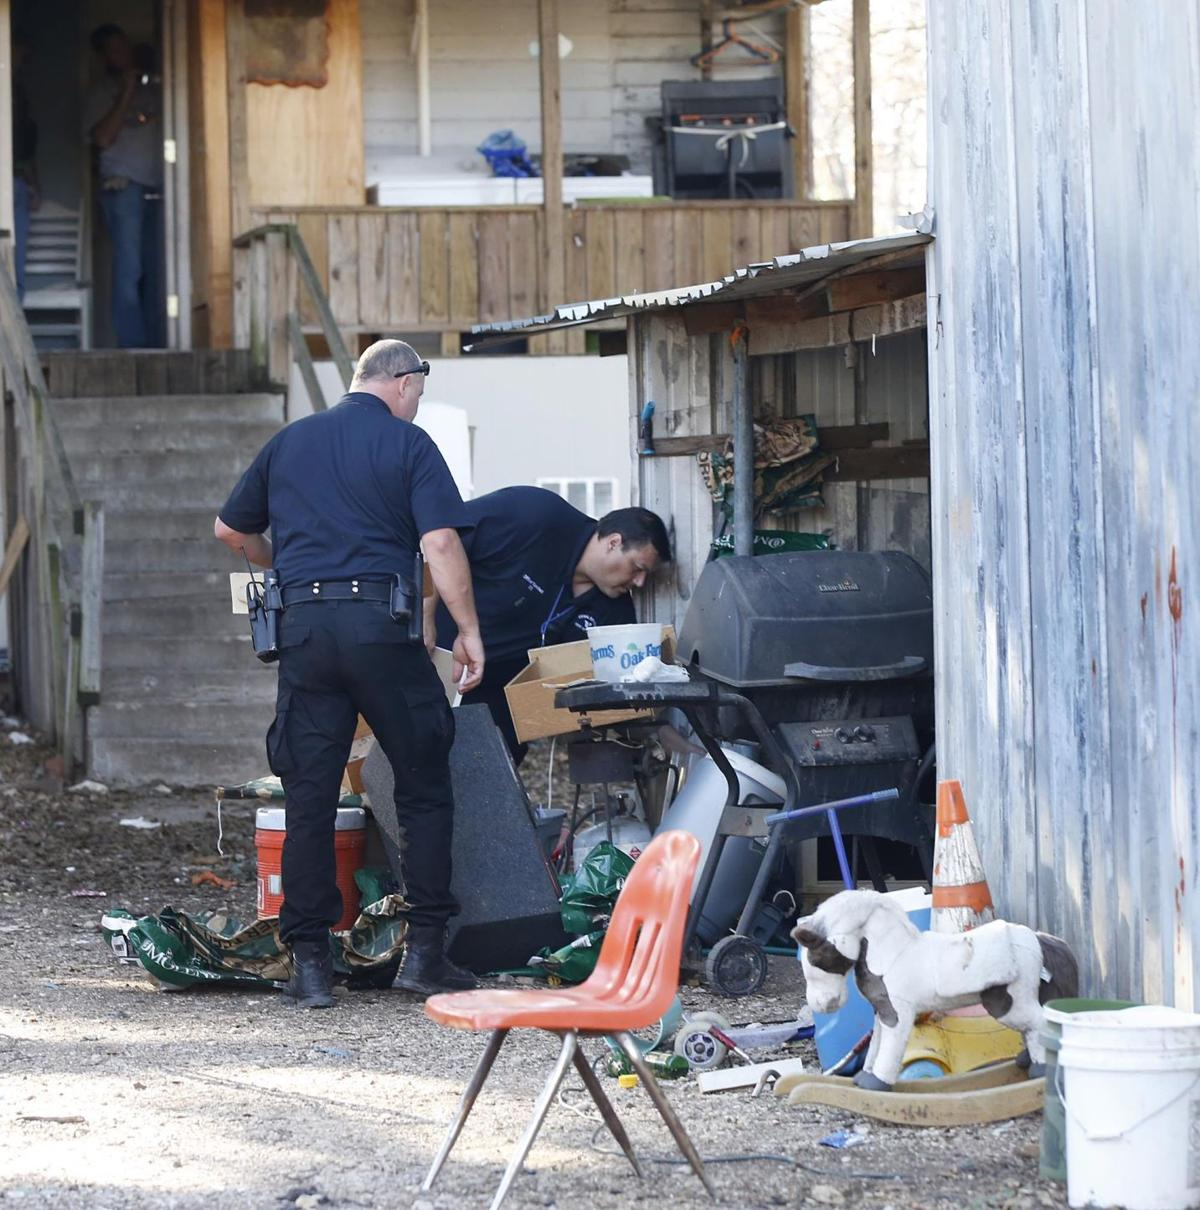 Waco Police Seize 41 Roosters, 29 Hens At Alleged